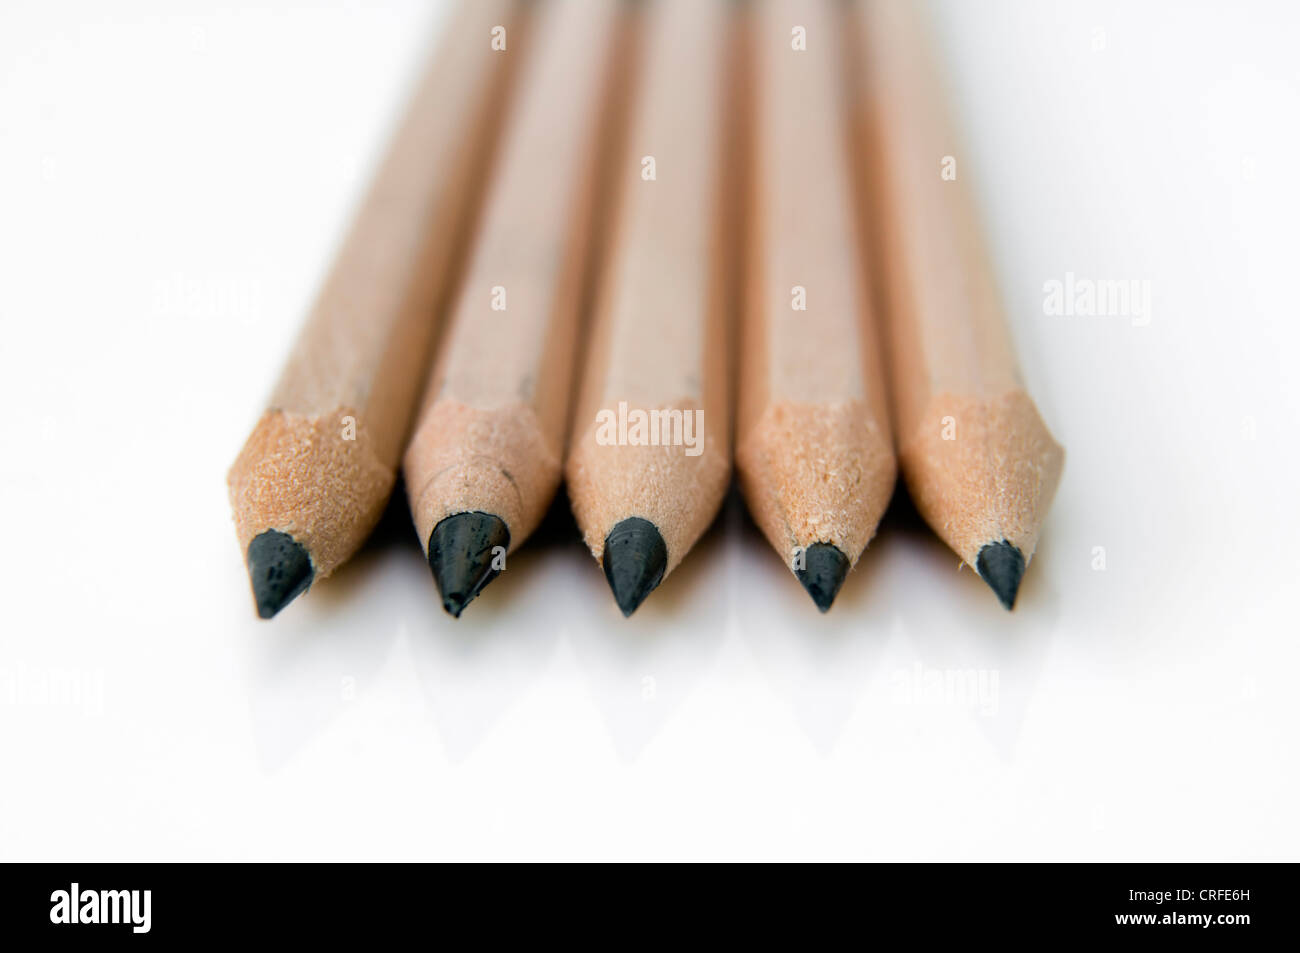 Five sharpened black HB pencils on white background - Stock Image